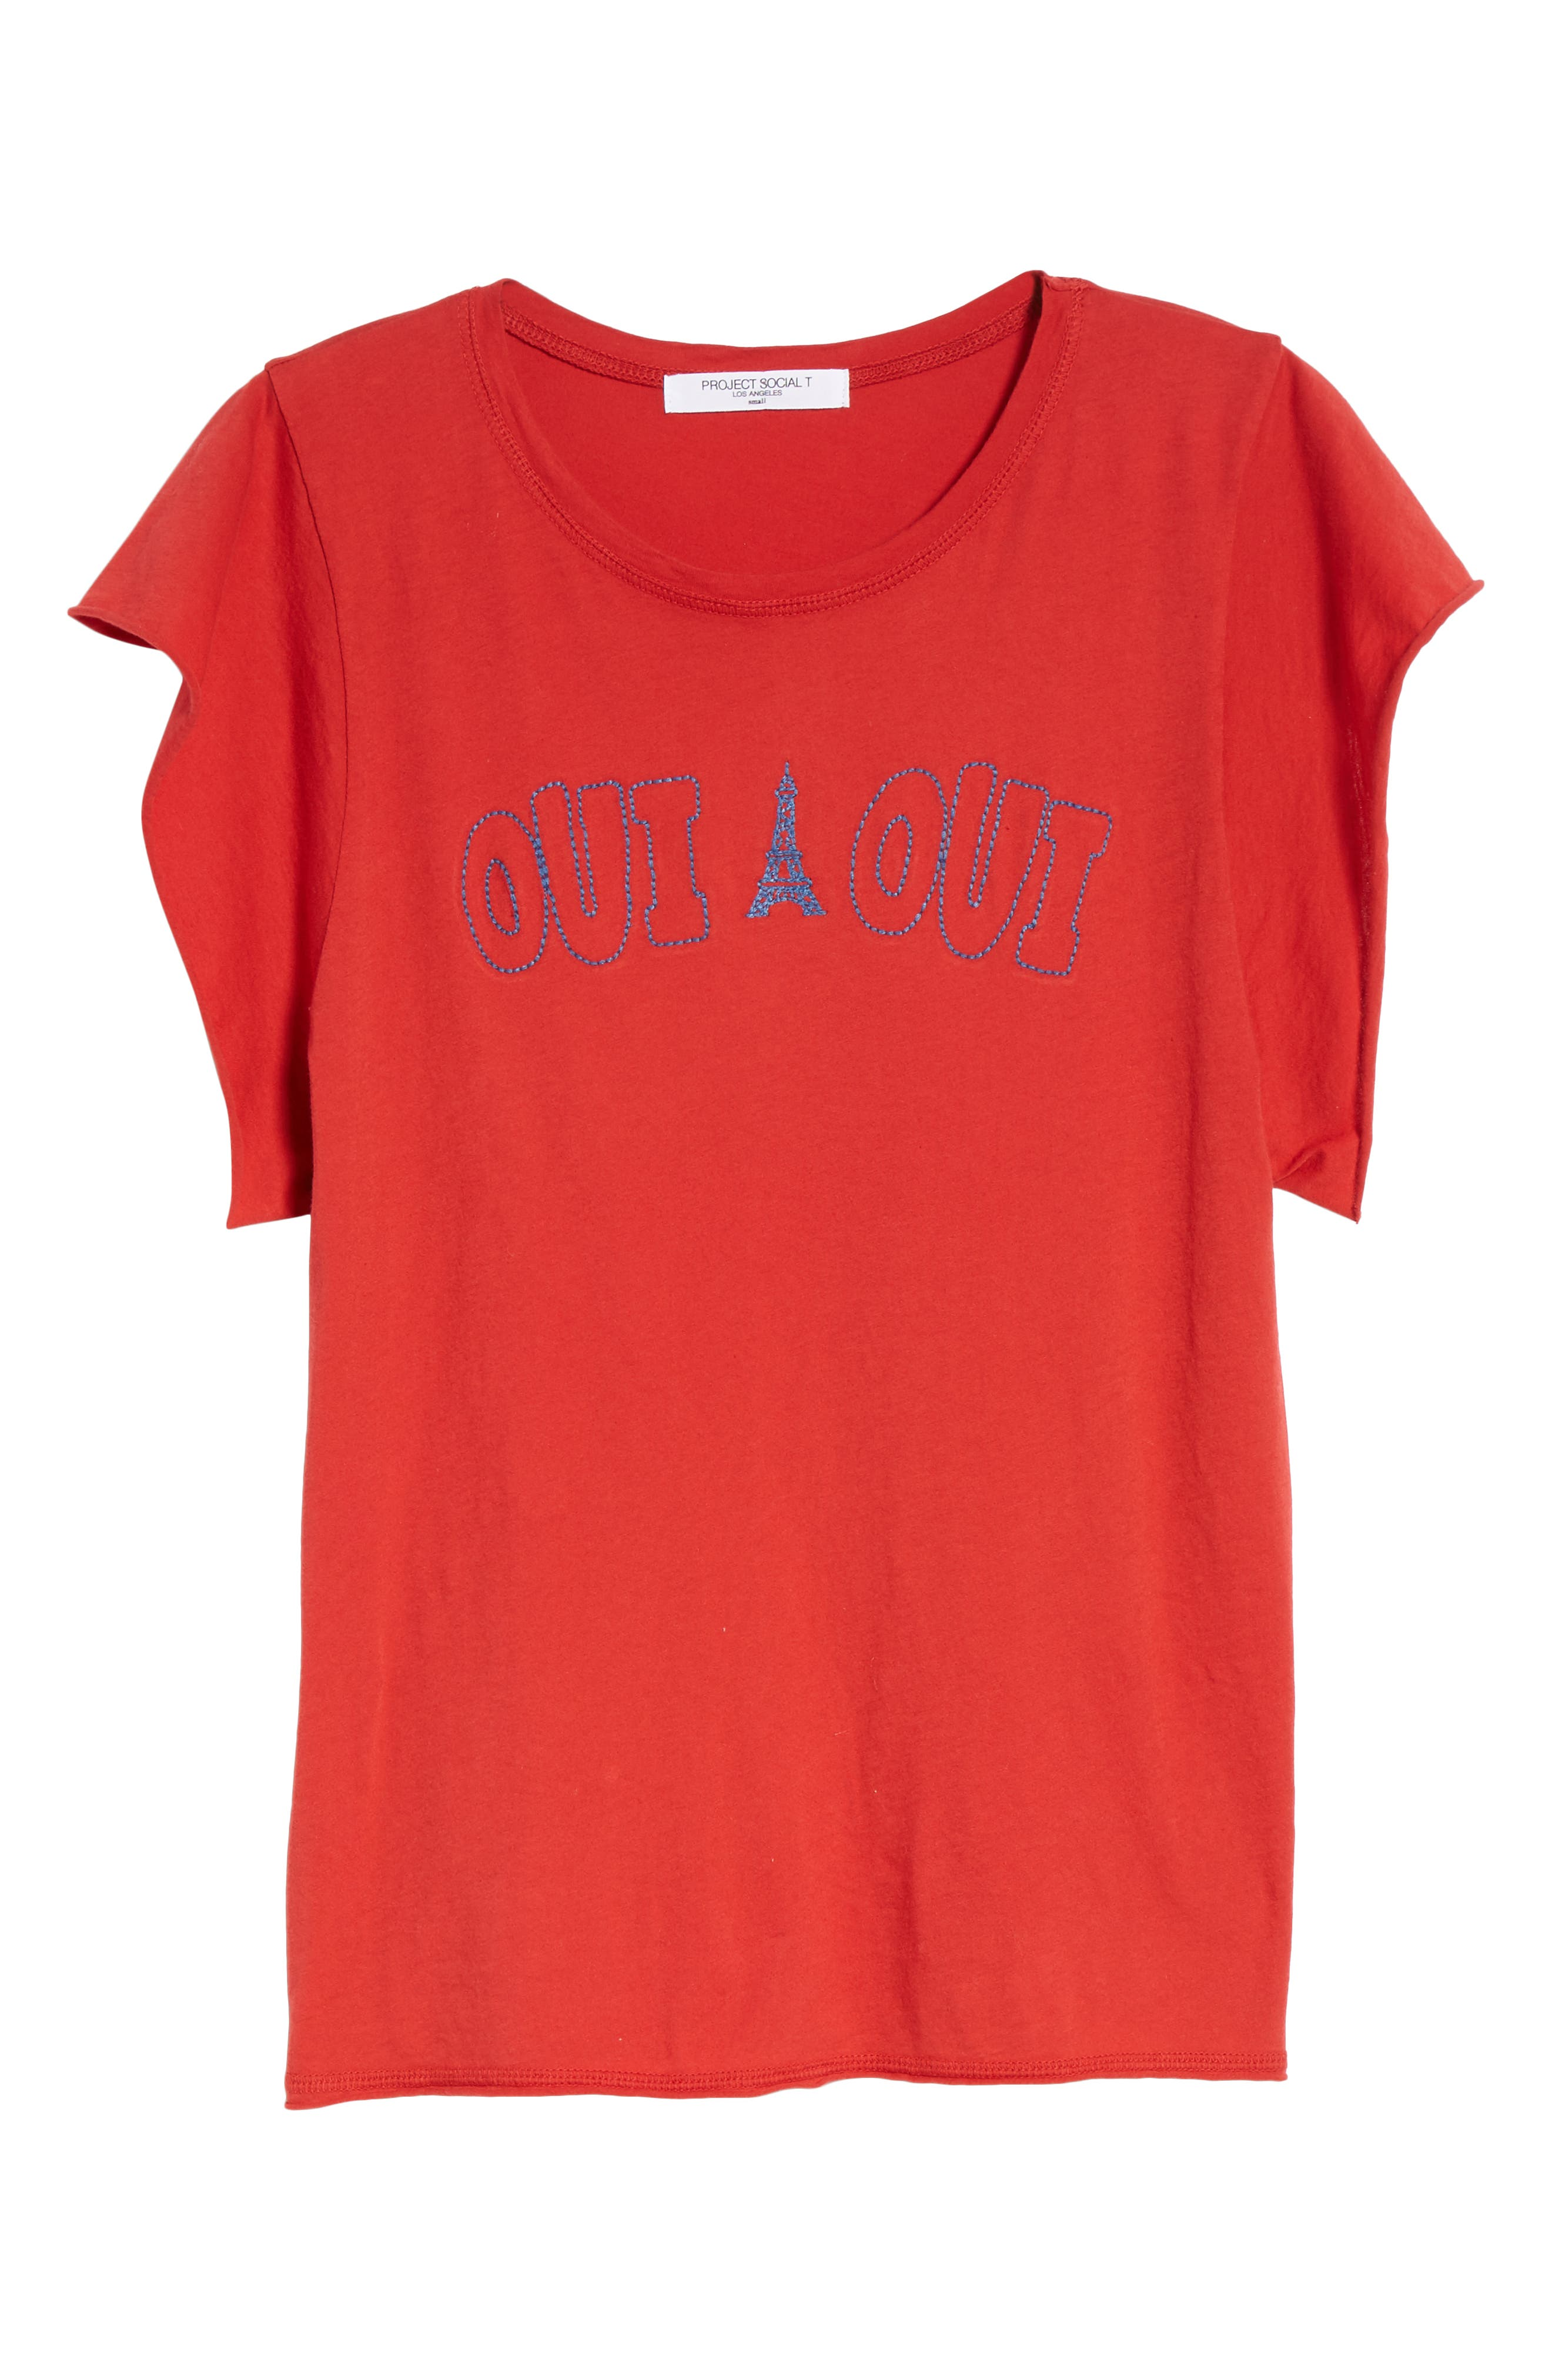 Oui Oui Embroidered Tee,                             Alternate thumbnail 7, color,                             600